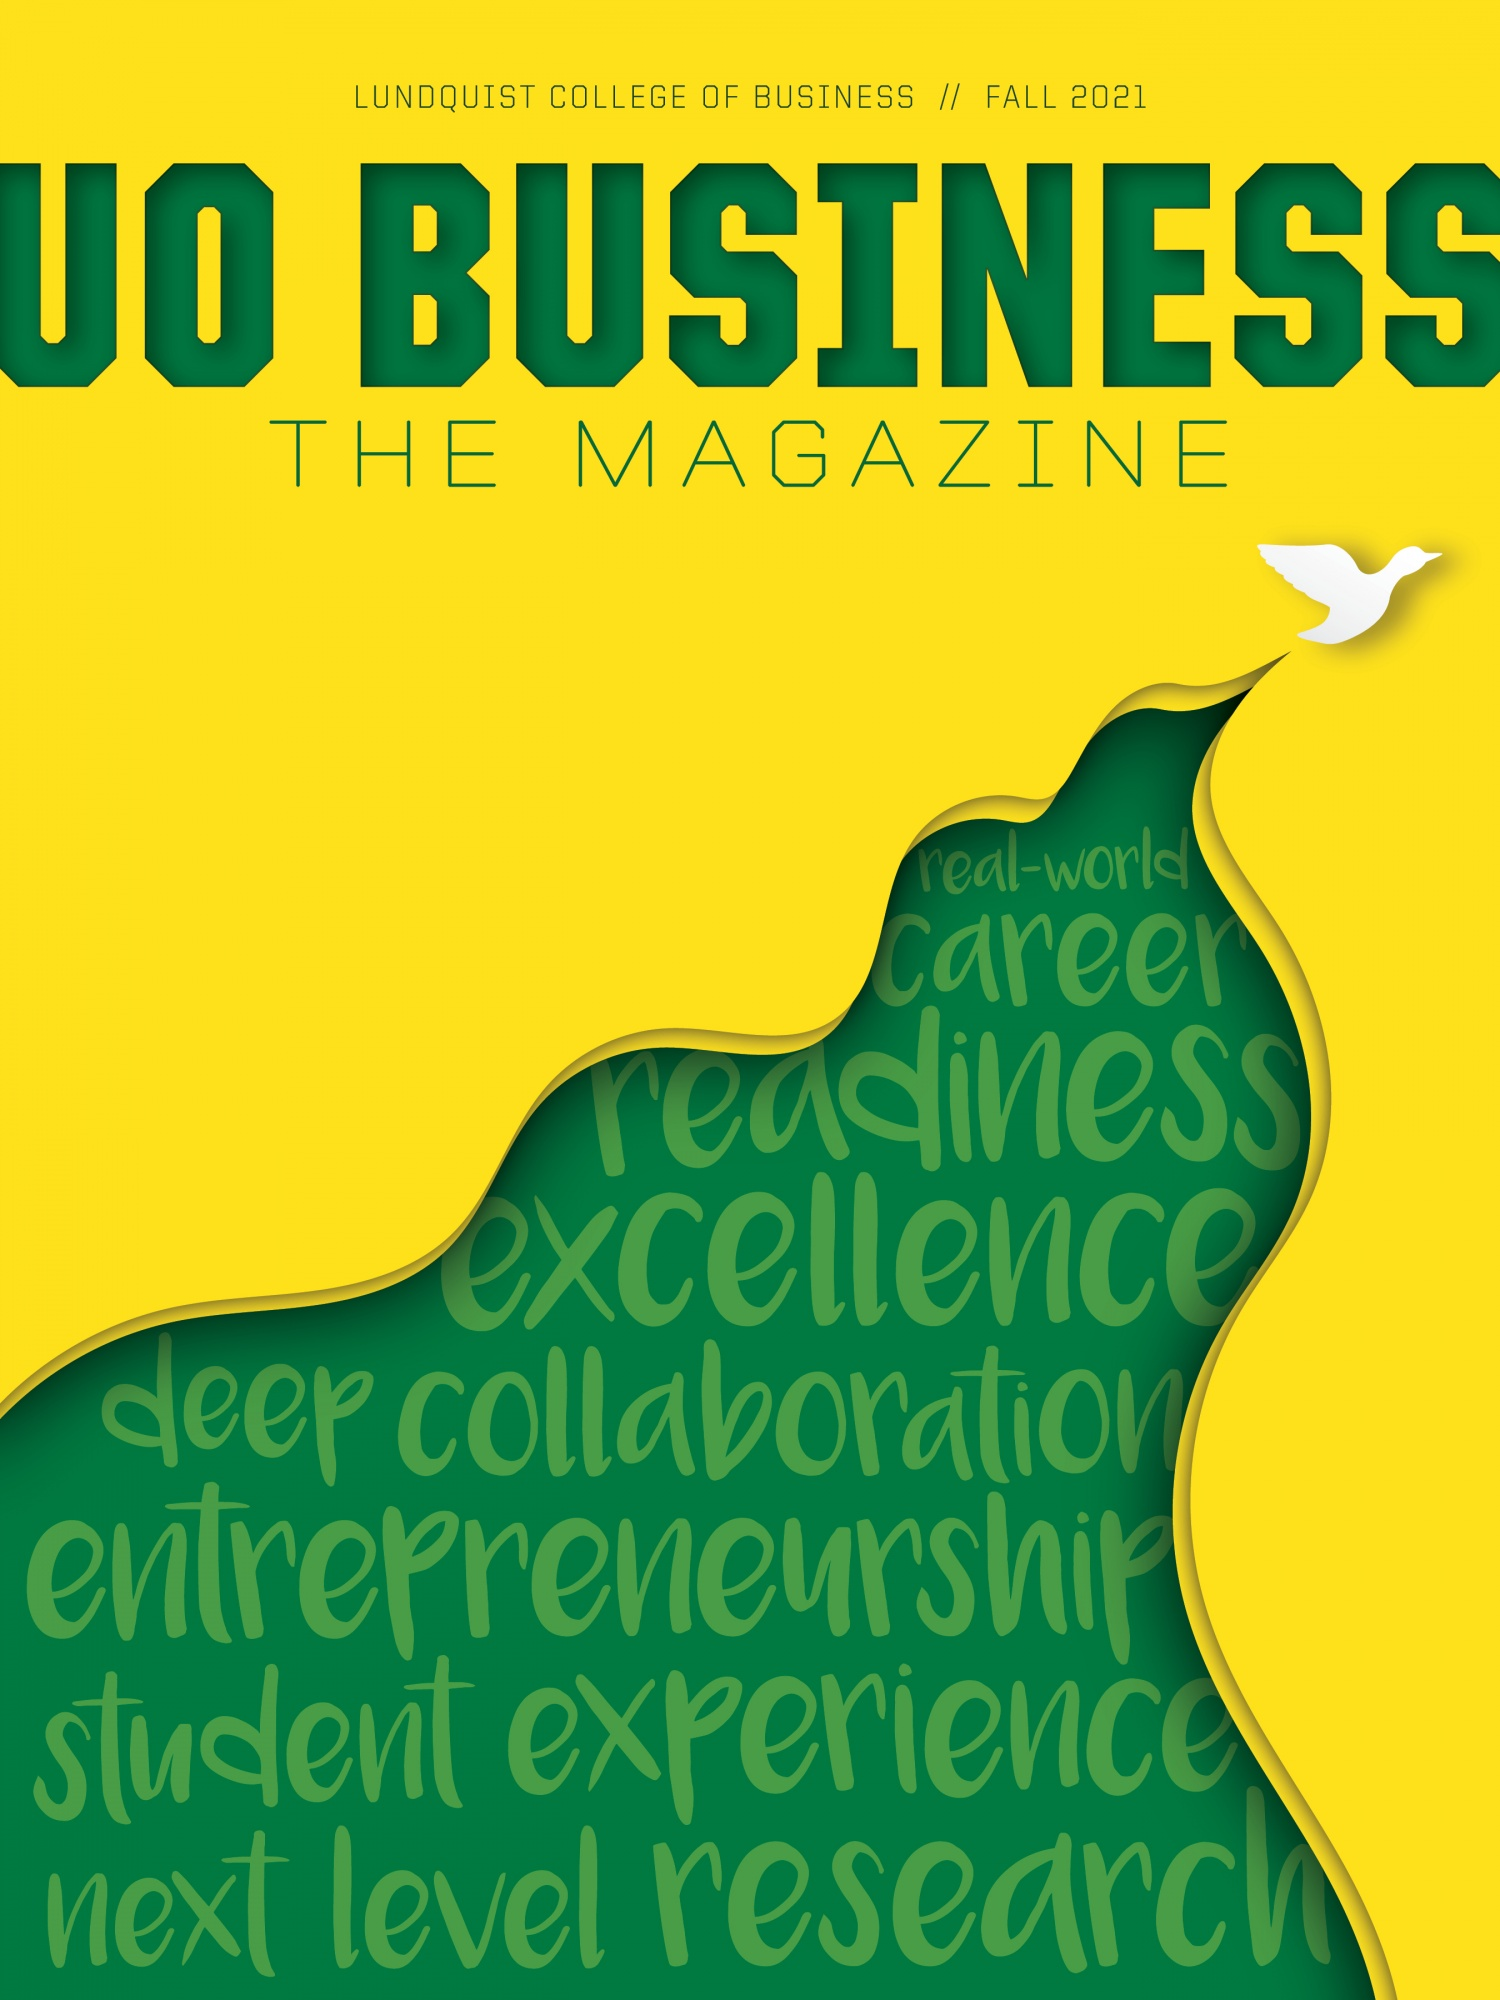 The cover art for UO Business: The Magazine: A white icon of a duck flies against a yellow background, its flight path appears to unveil a green background with phrases pertaining to the Lundquist College